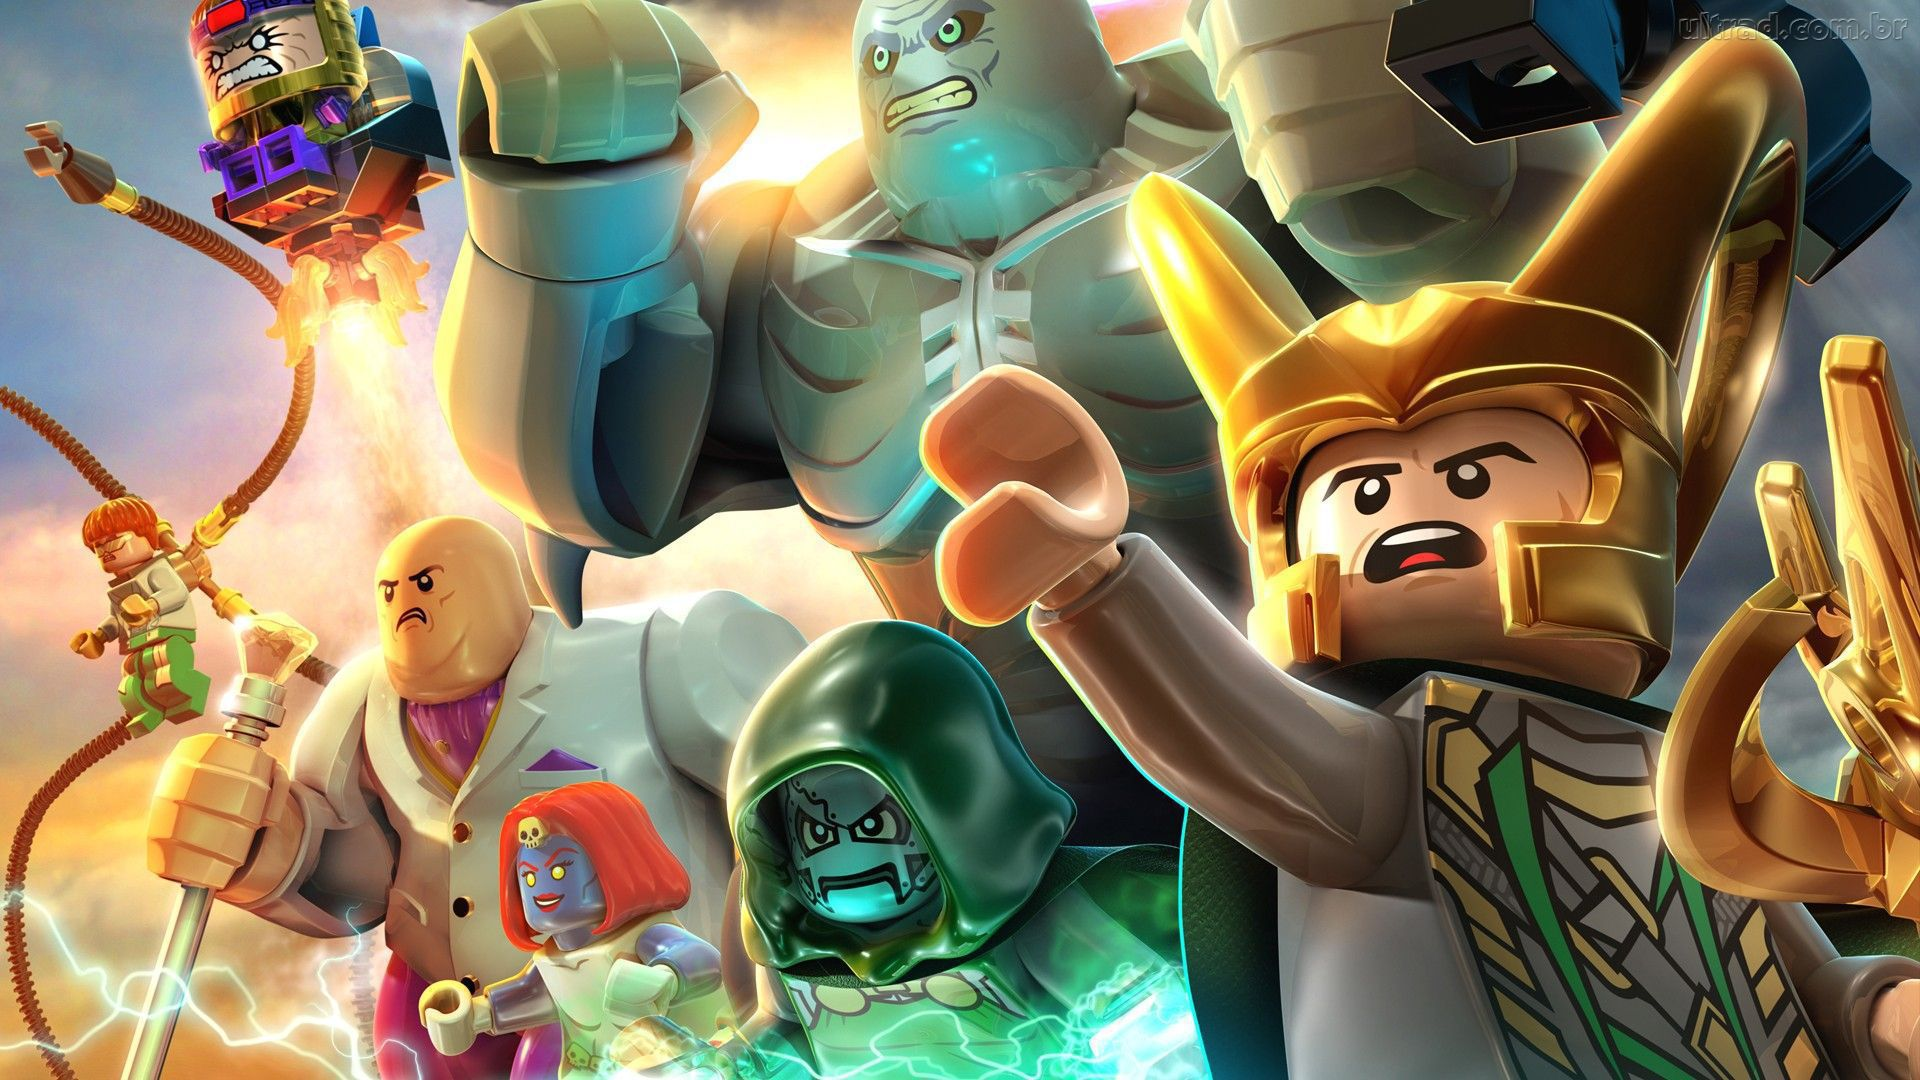 Lego marvel super heroes 2 wallpapers images photos pictures lego marvel super heroes 2 high quality wallpapers voltagebd Image collections